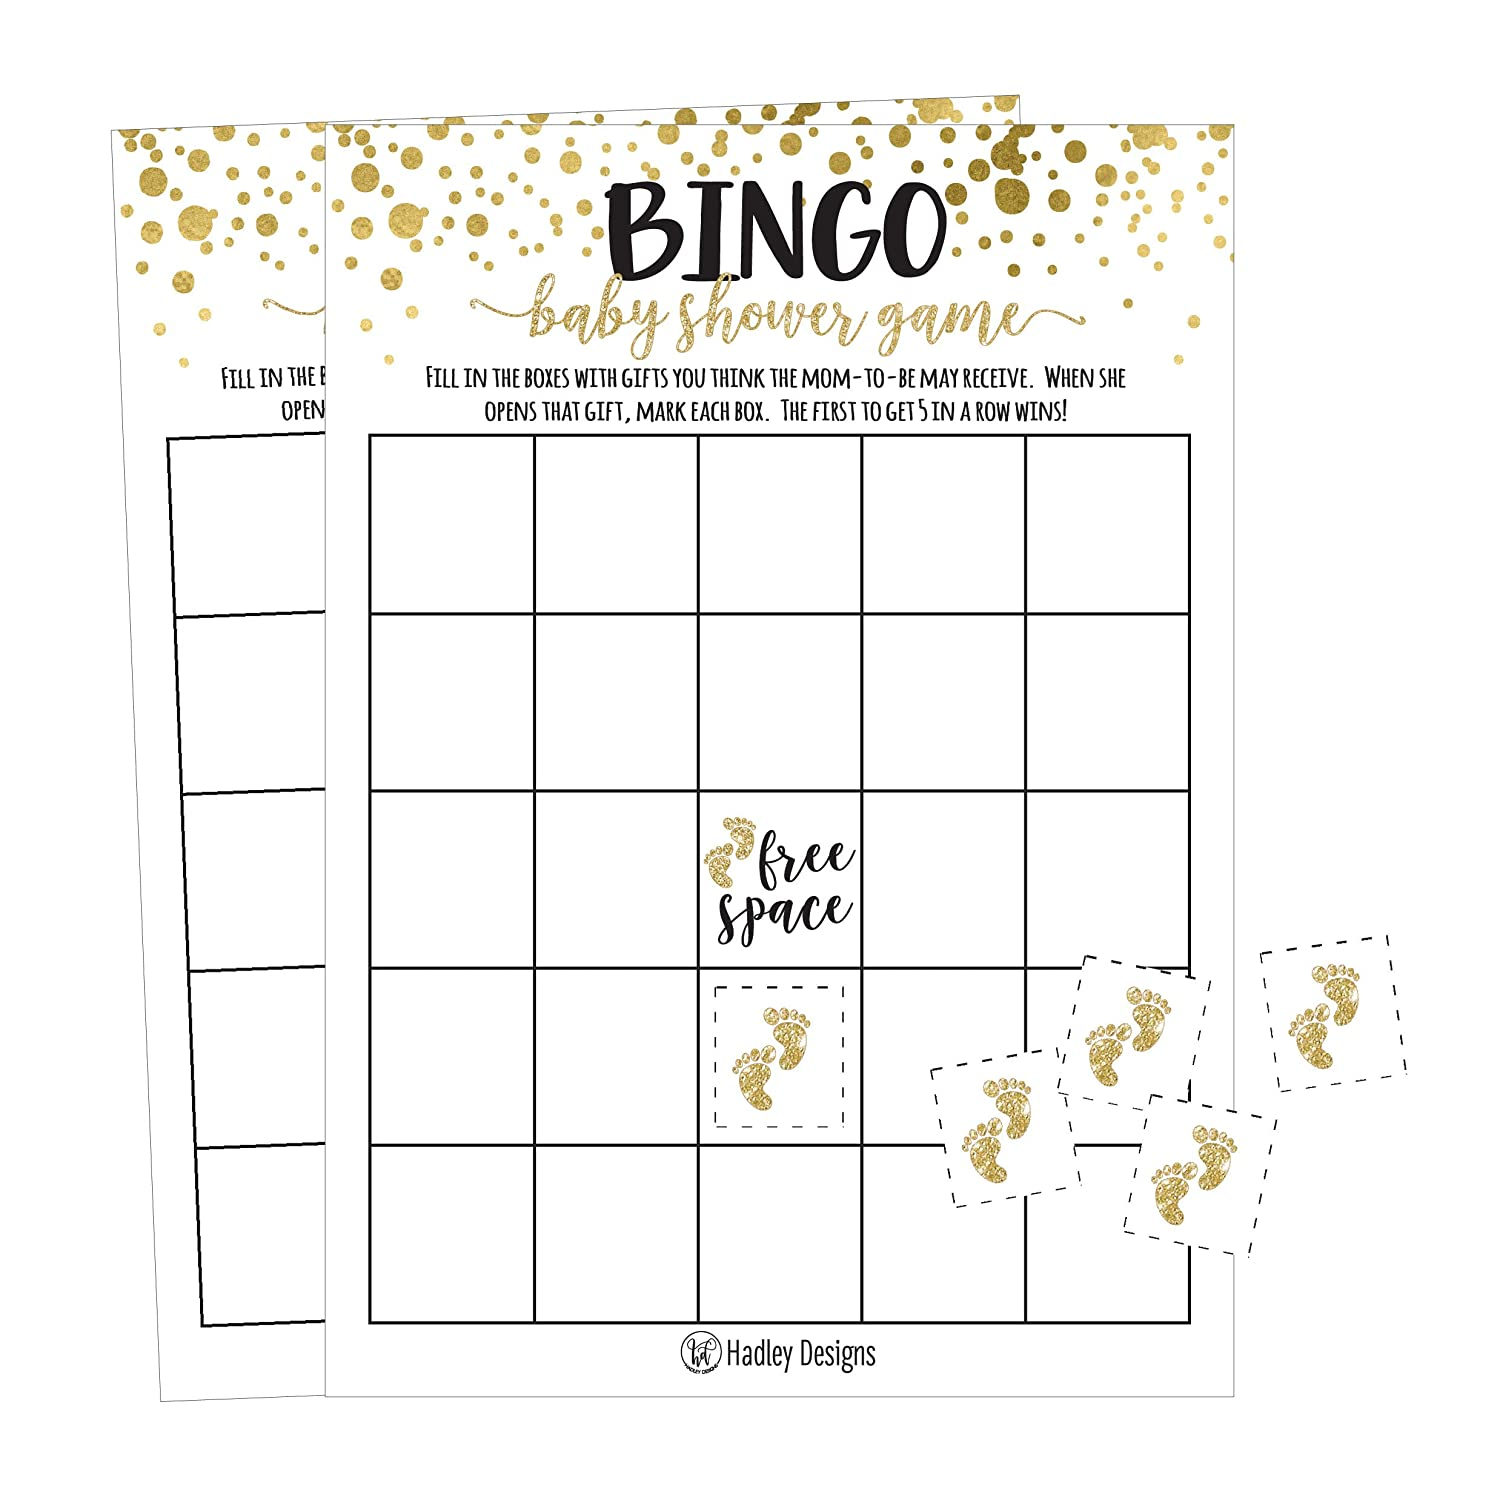 image relating to Addition Bingo Printable known as 25 Gold Bingo Match Playing cards For Child Shower, Greater part Blank Bingo Squares, In addition 25 Pack of Child Ft Recreation Chips, Humorous Little one Bash Programs and Components For Female